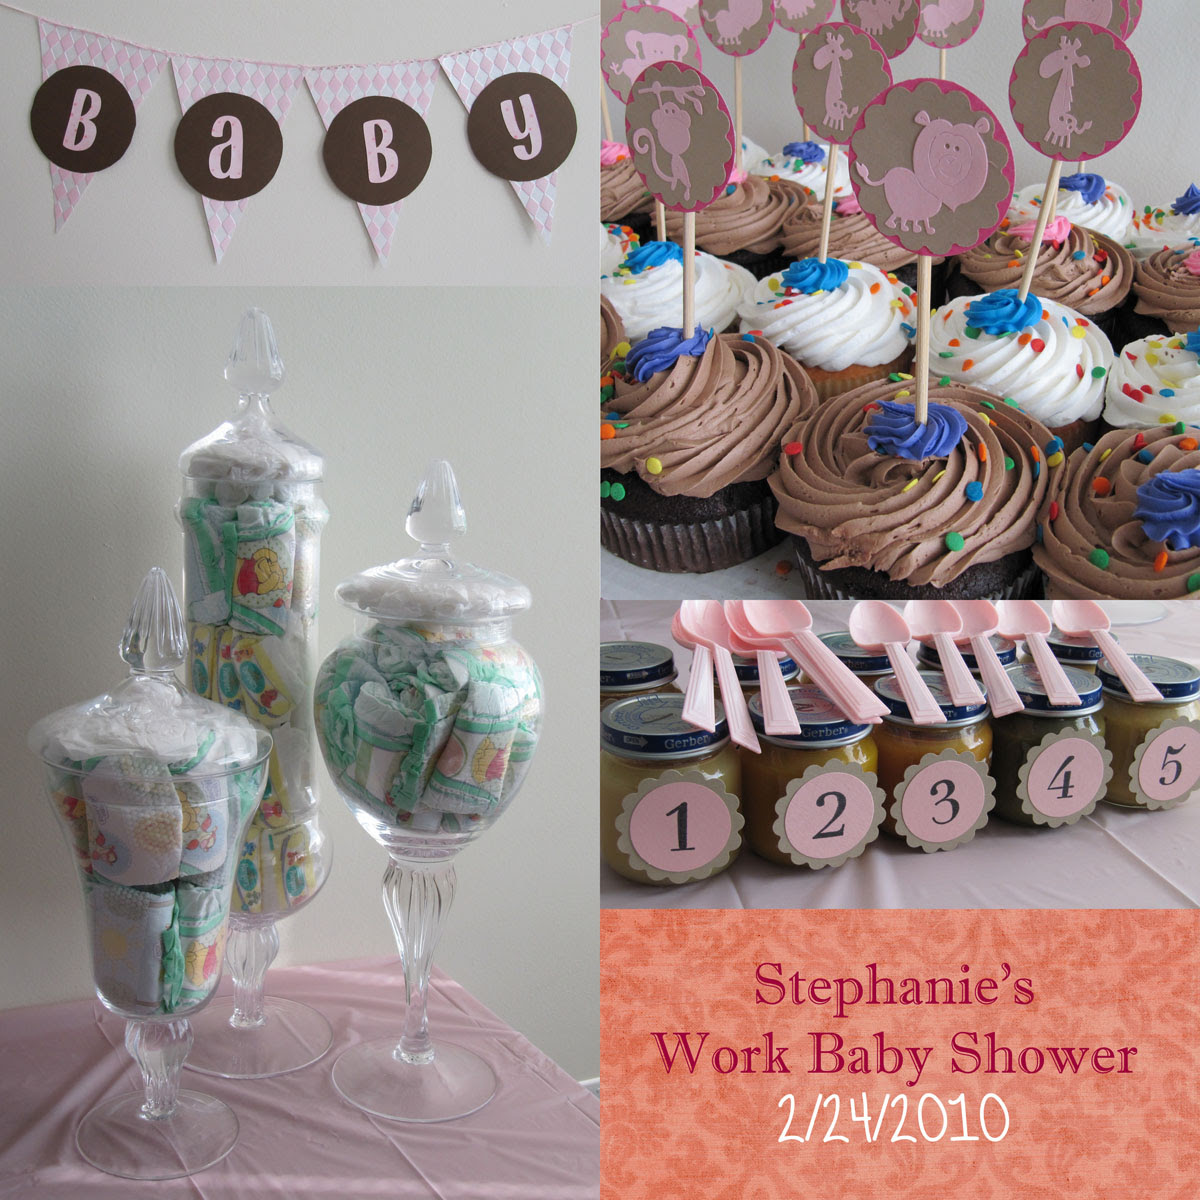 StephanieWorkBabyShowerCollage